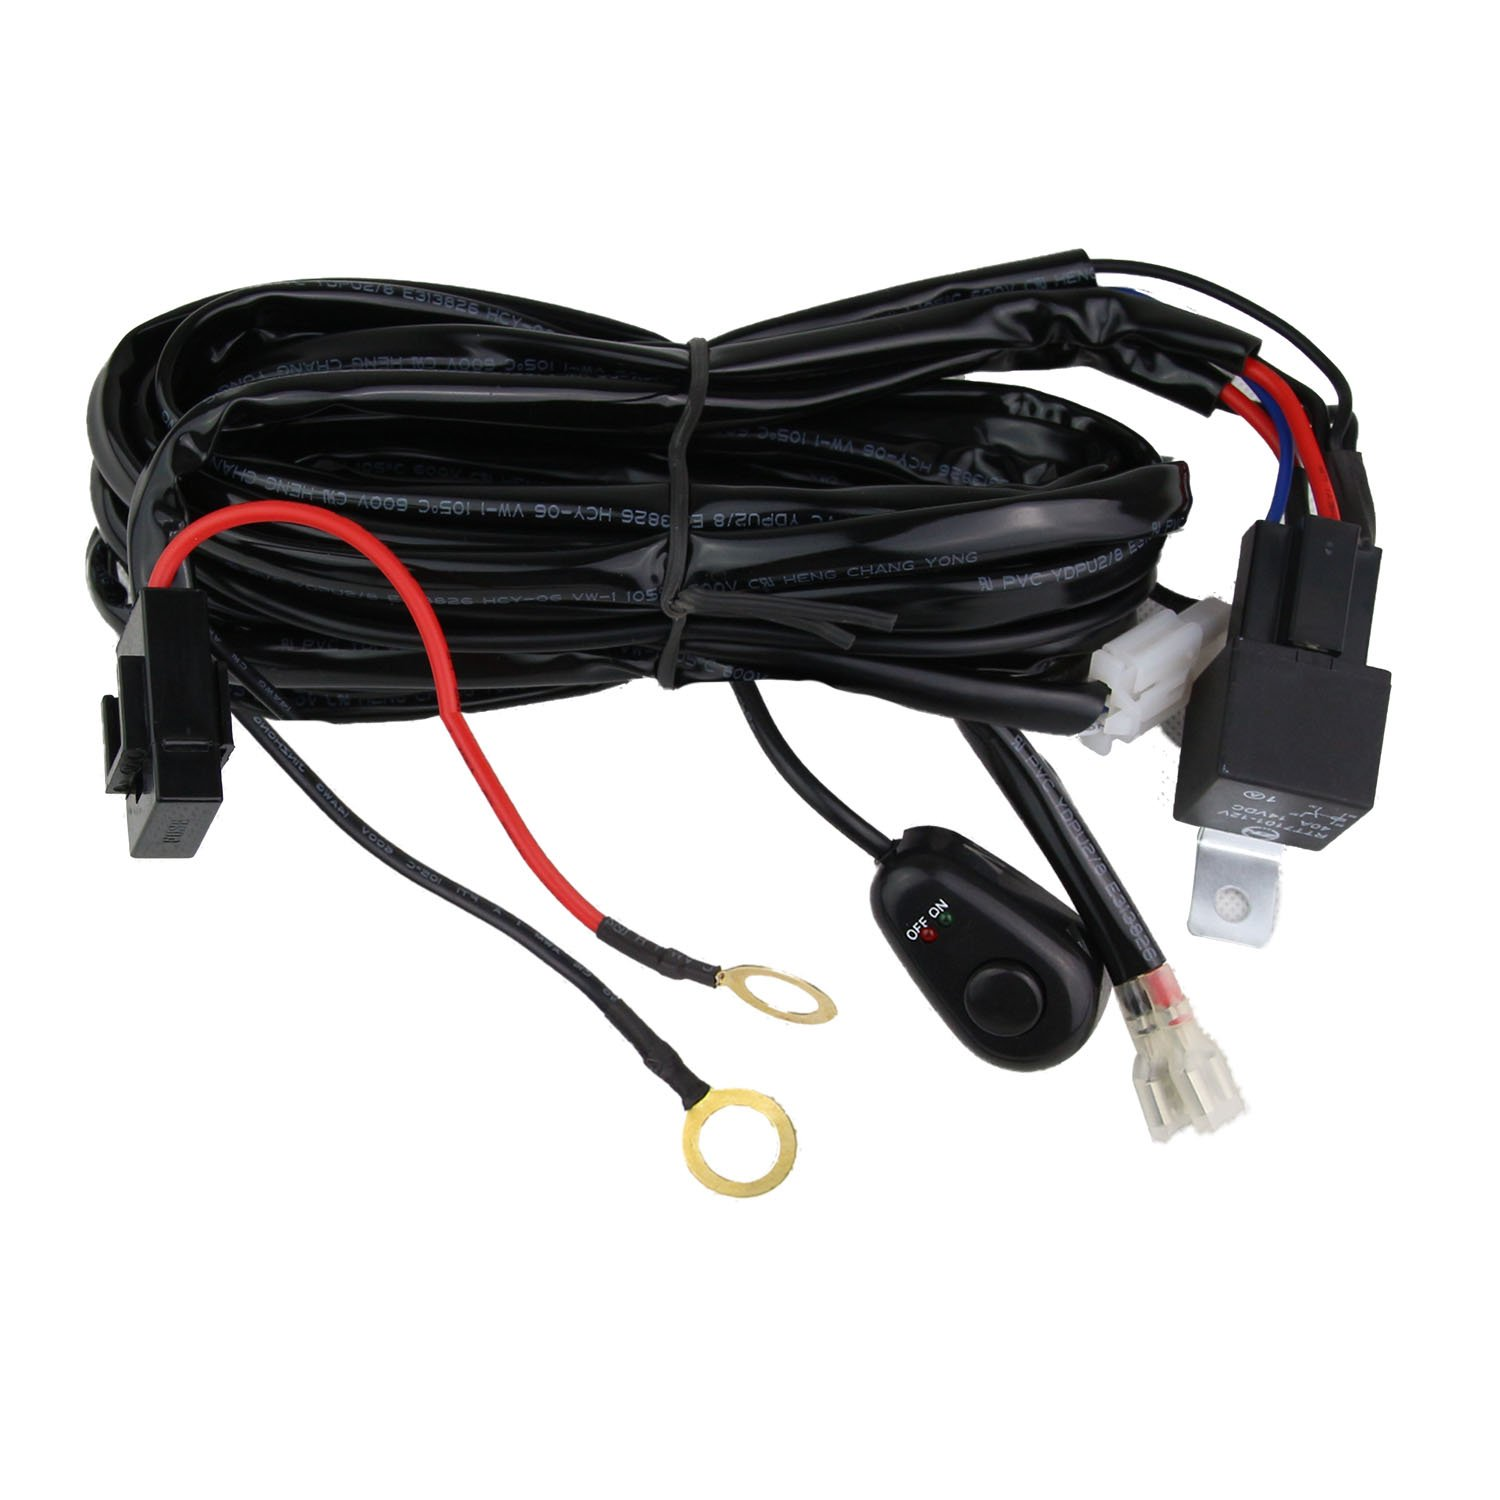 Difference between hrc and pac on wiring harness